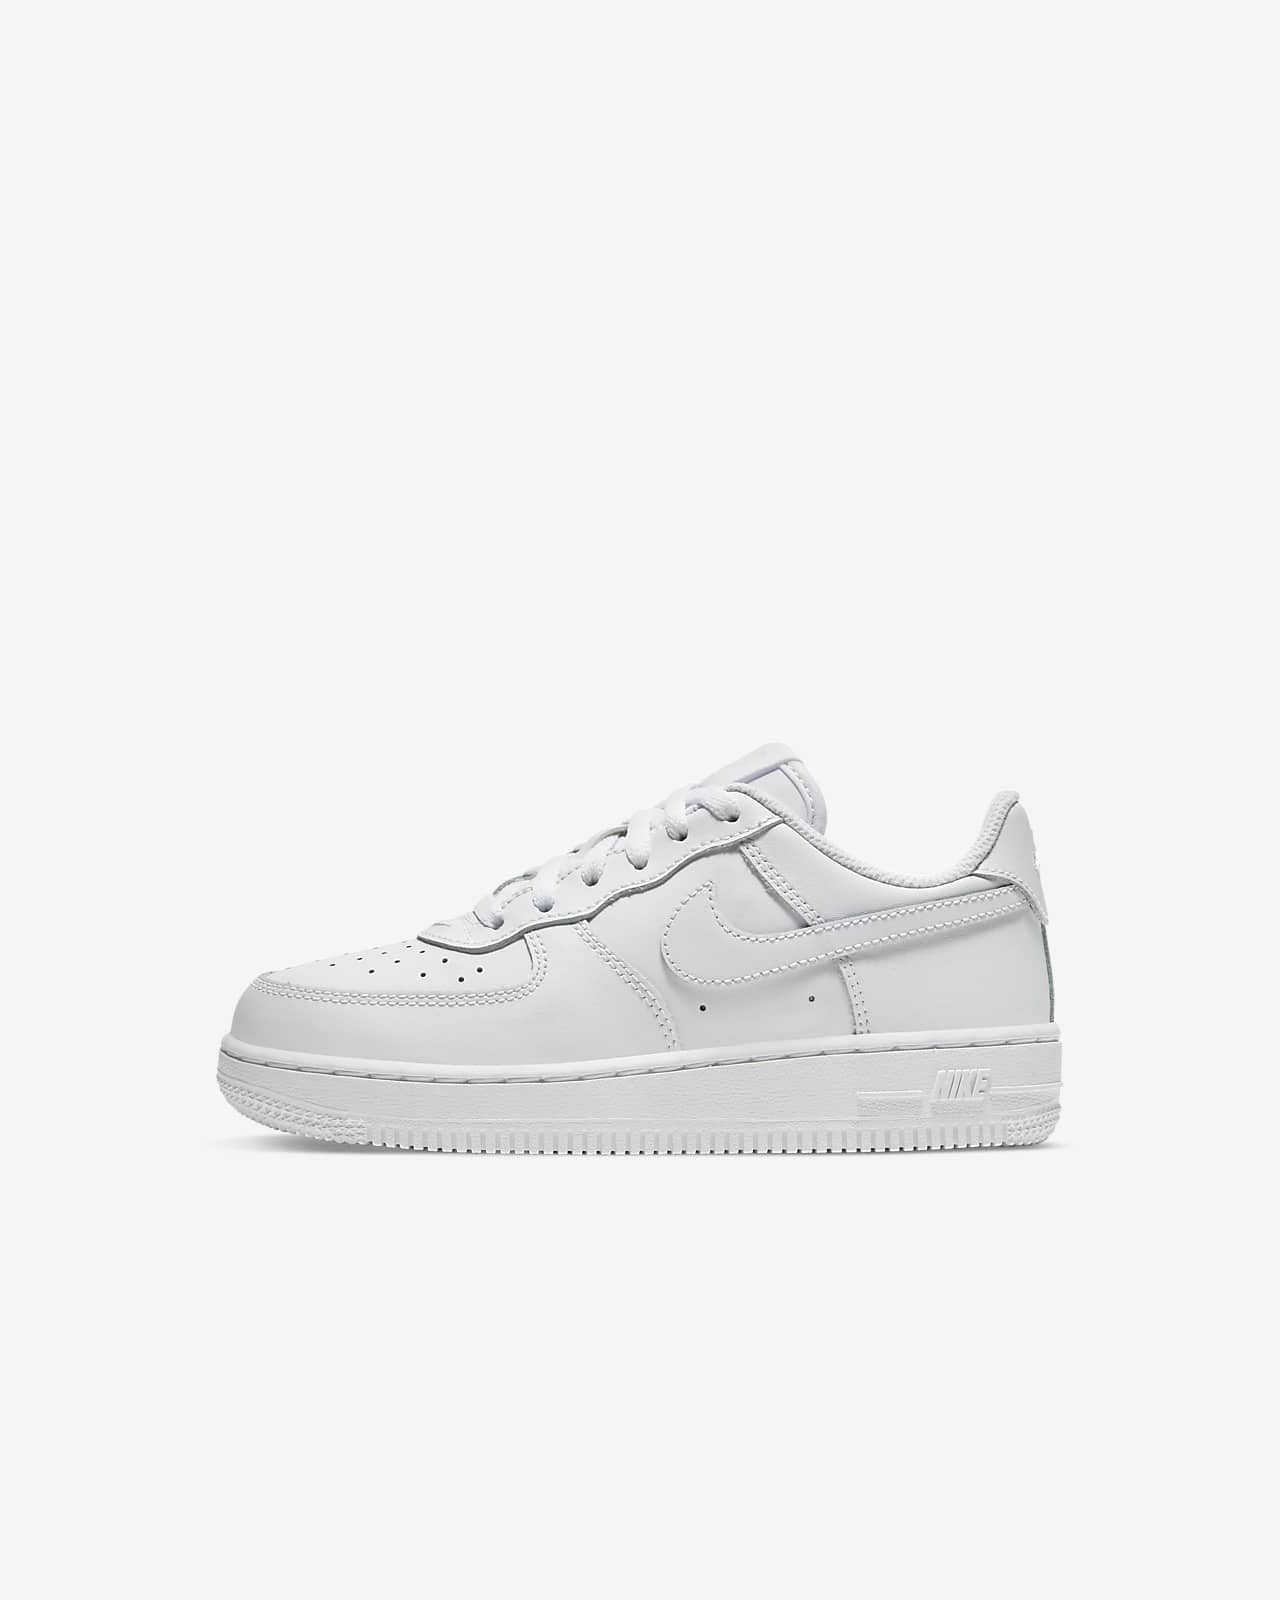 Stazione marmo Umido  Nike Force 1 Little Kids' Shoe. Nike.com